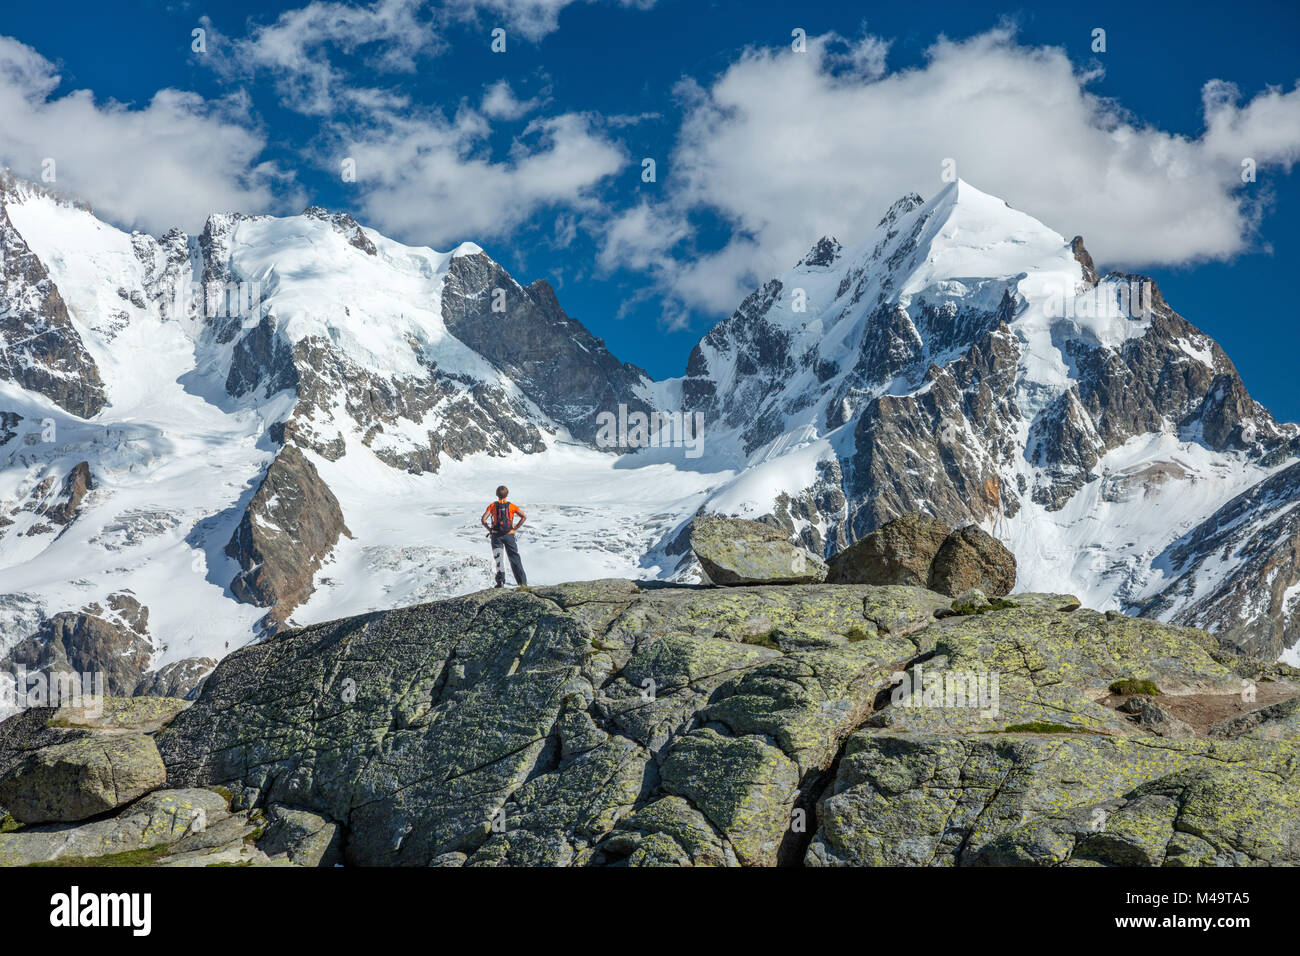 Randonneur sous le Piz Bernina et Piz, Rosbeg Fuorcla Surlej, Berniner Alpes, Grisons, Suisse. Photo Stock